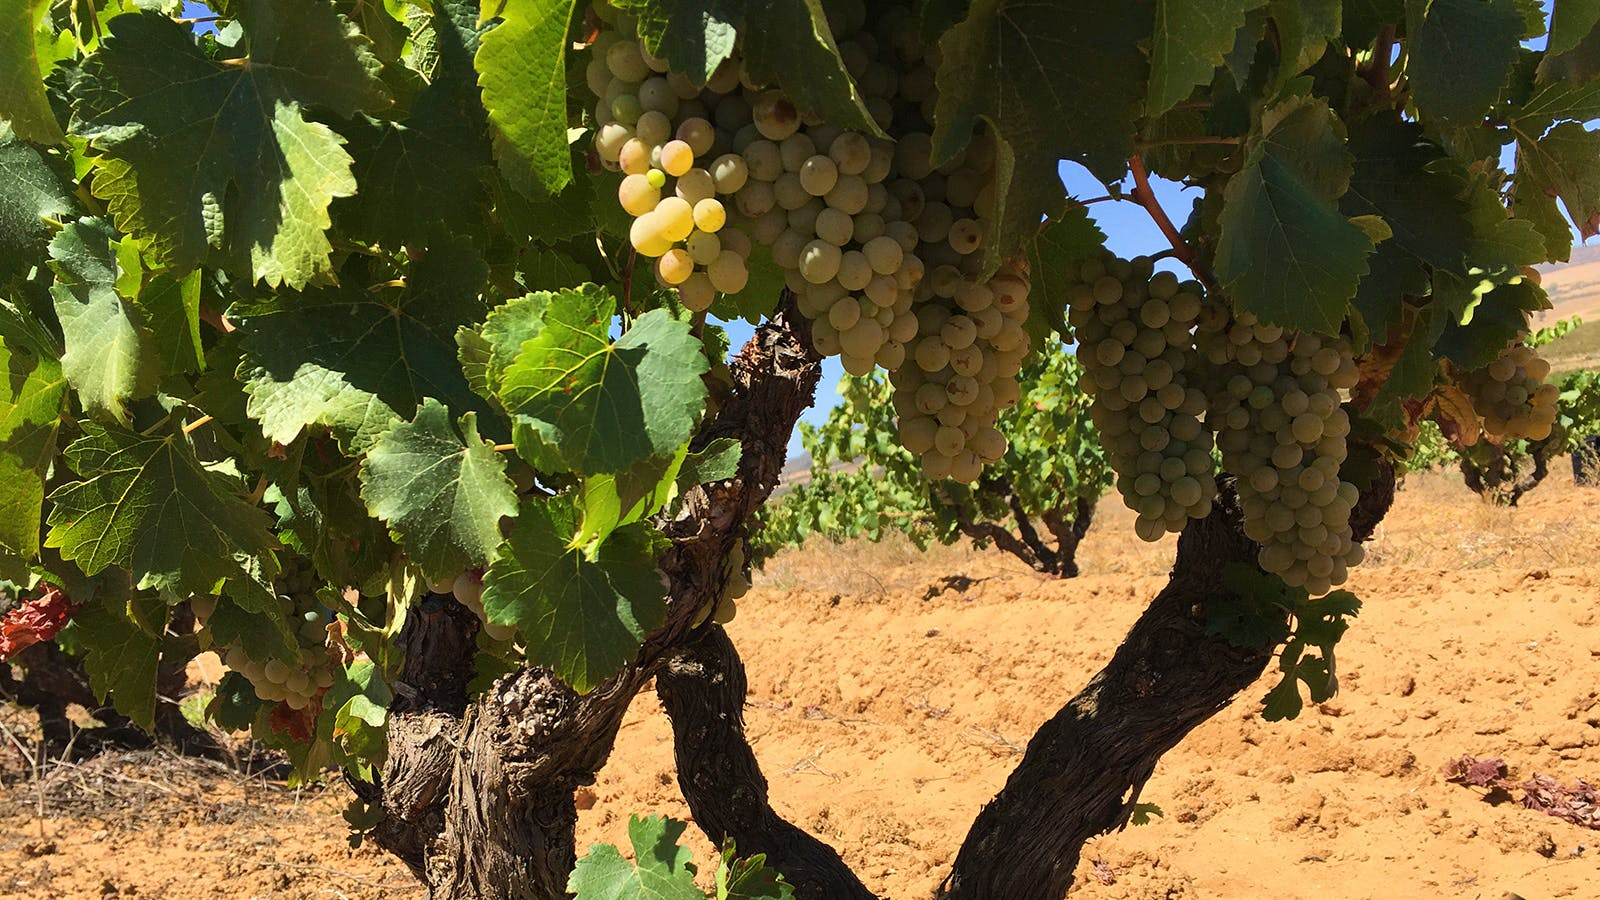 2017 Harvest Report: Despite Drought, Potential Is High for South African Wines